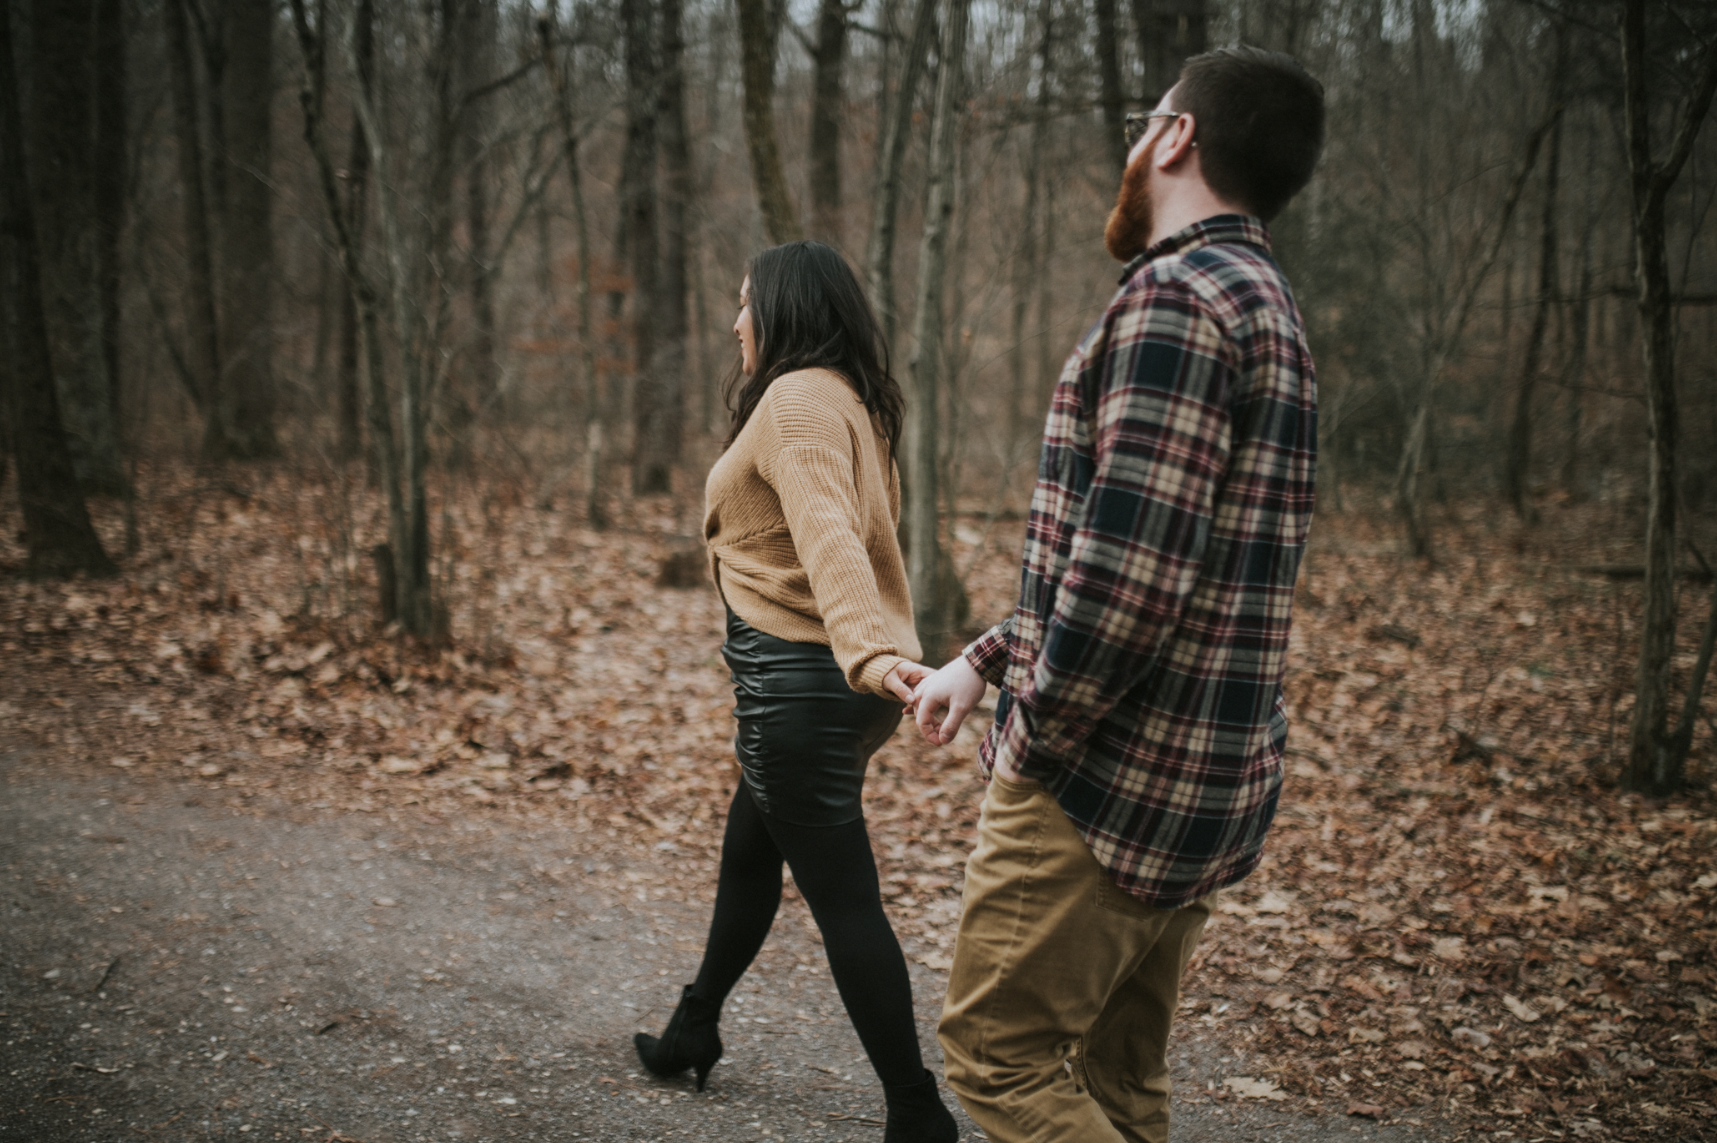 matt-natalia-winter-woods-engagement-session-pennsylvania-wedding-photographer-4